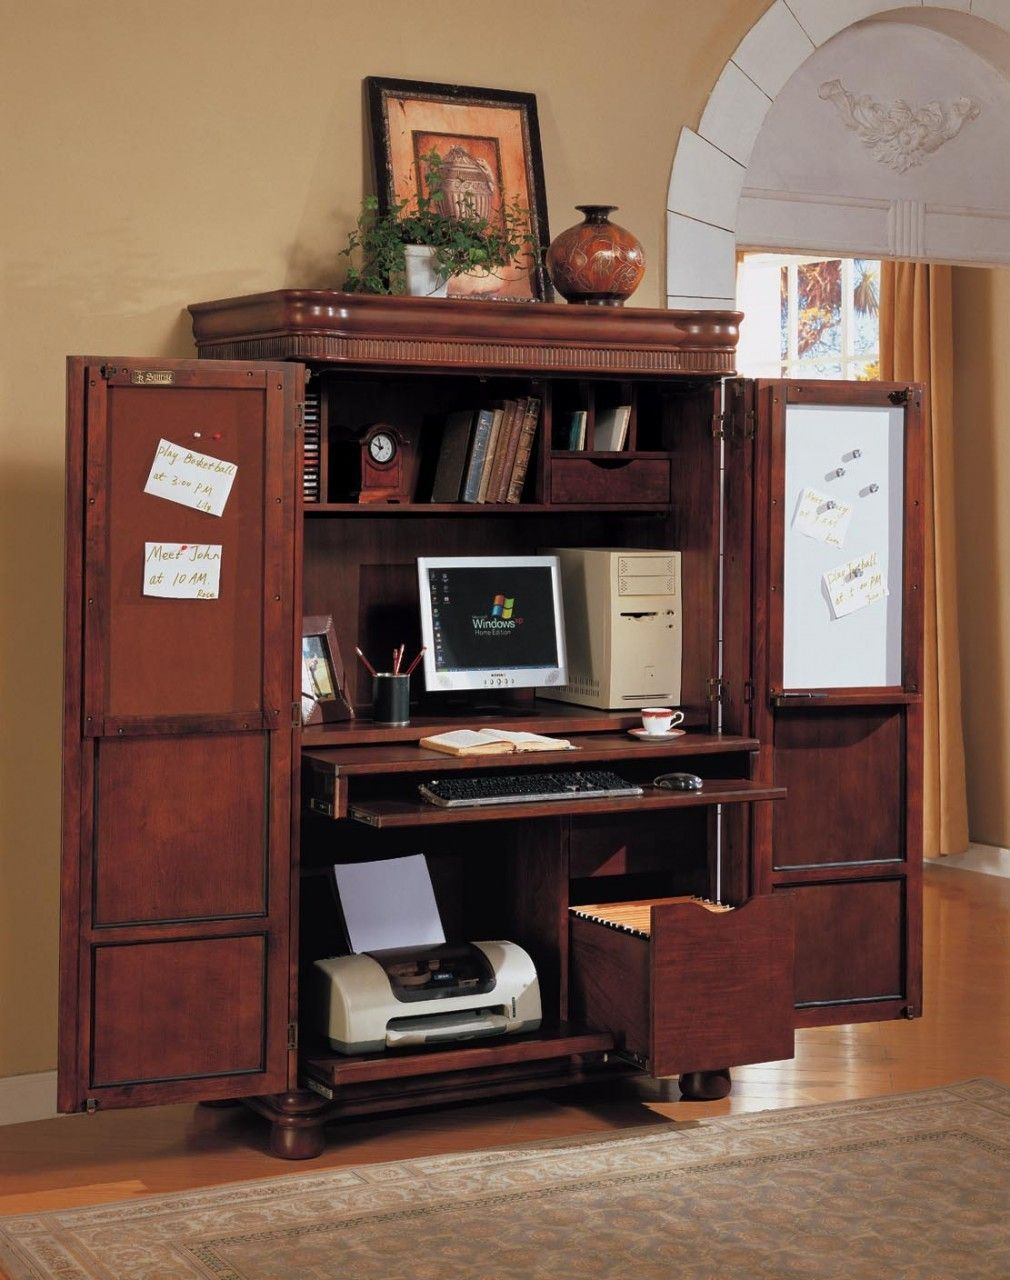 computer armoire--great idea to shut away clutter since computer